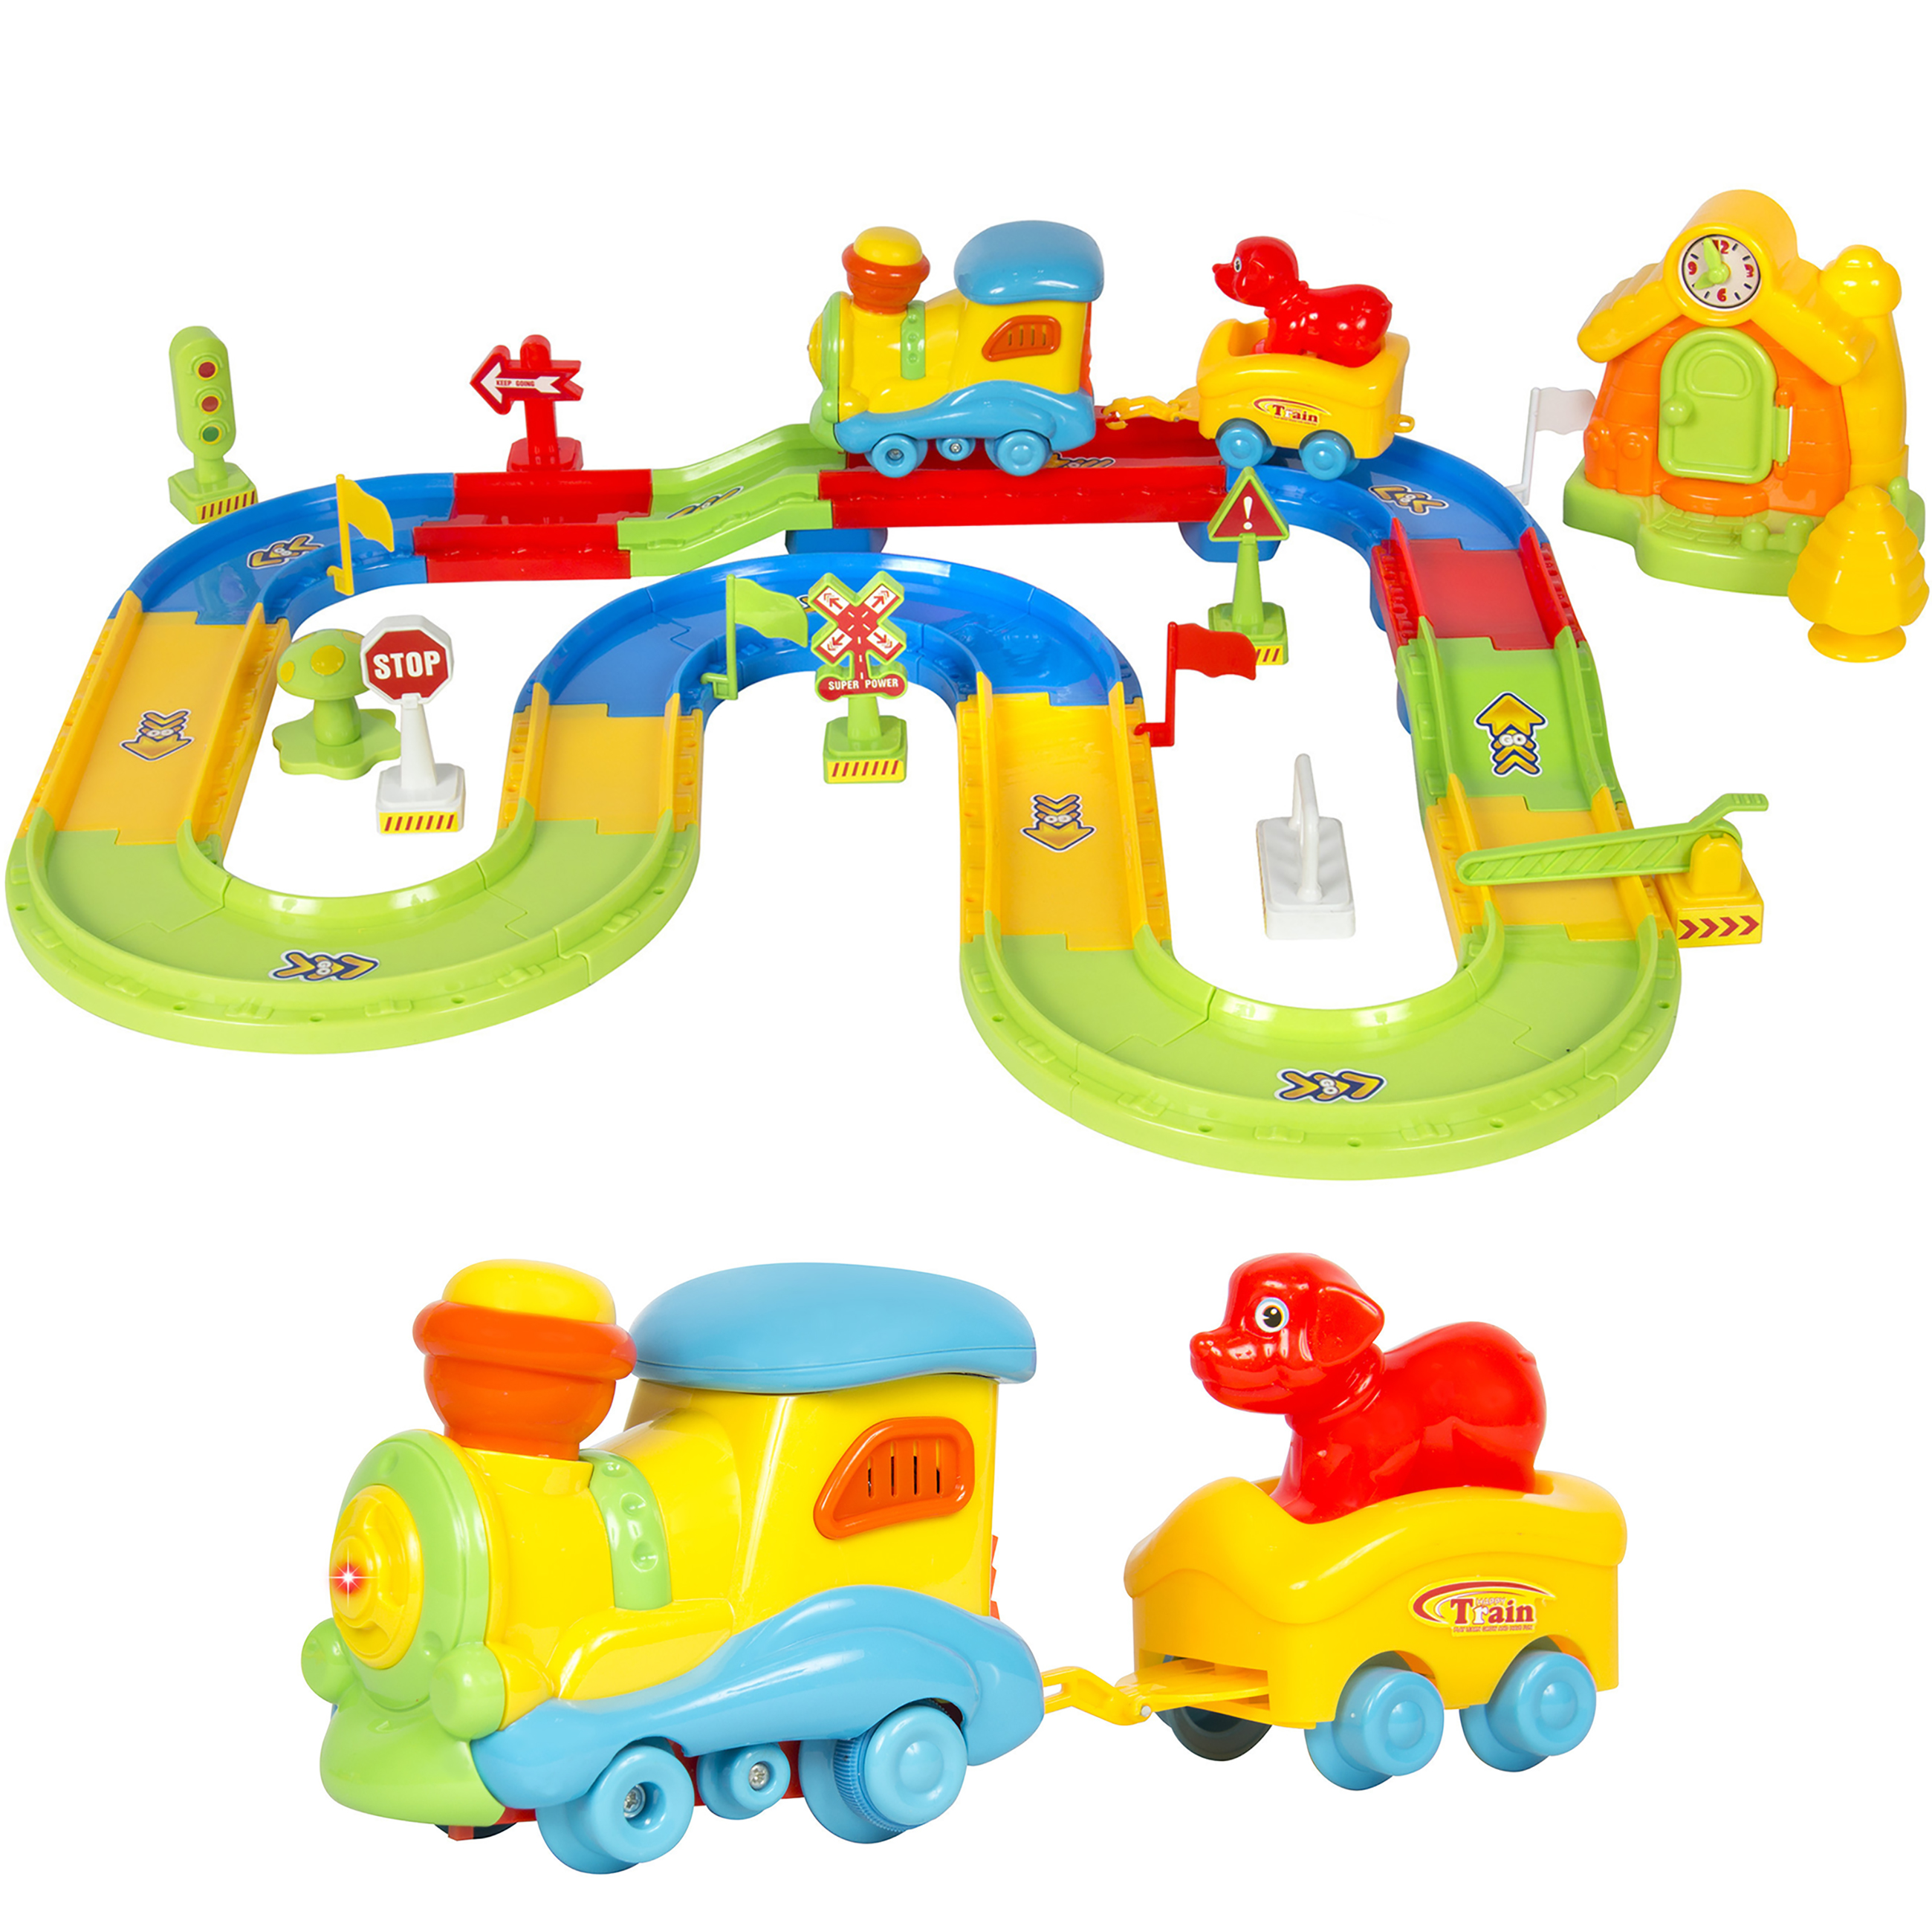 Kids Toy Deluxe Electric Train Set With Lights and Sound Colorful Tracks Battery Operated Railway Car Set